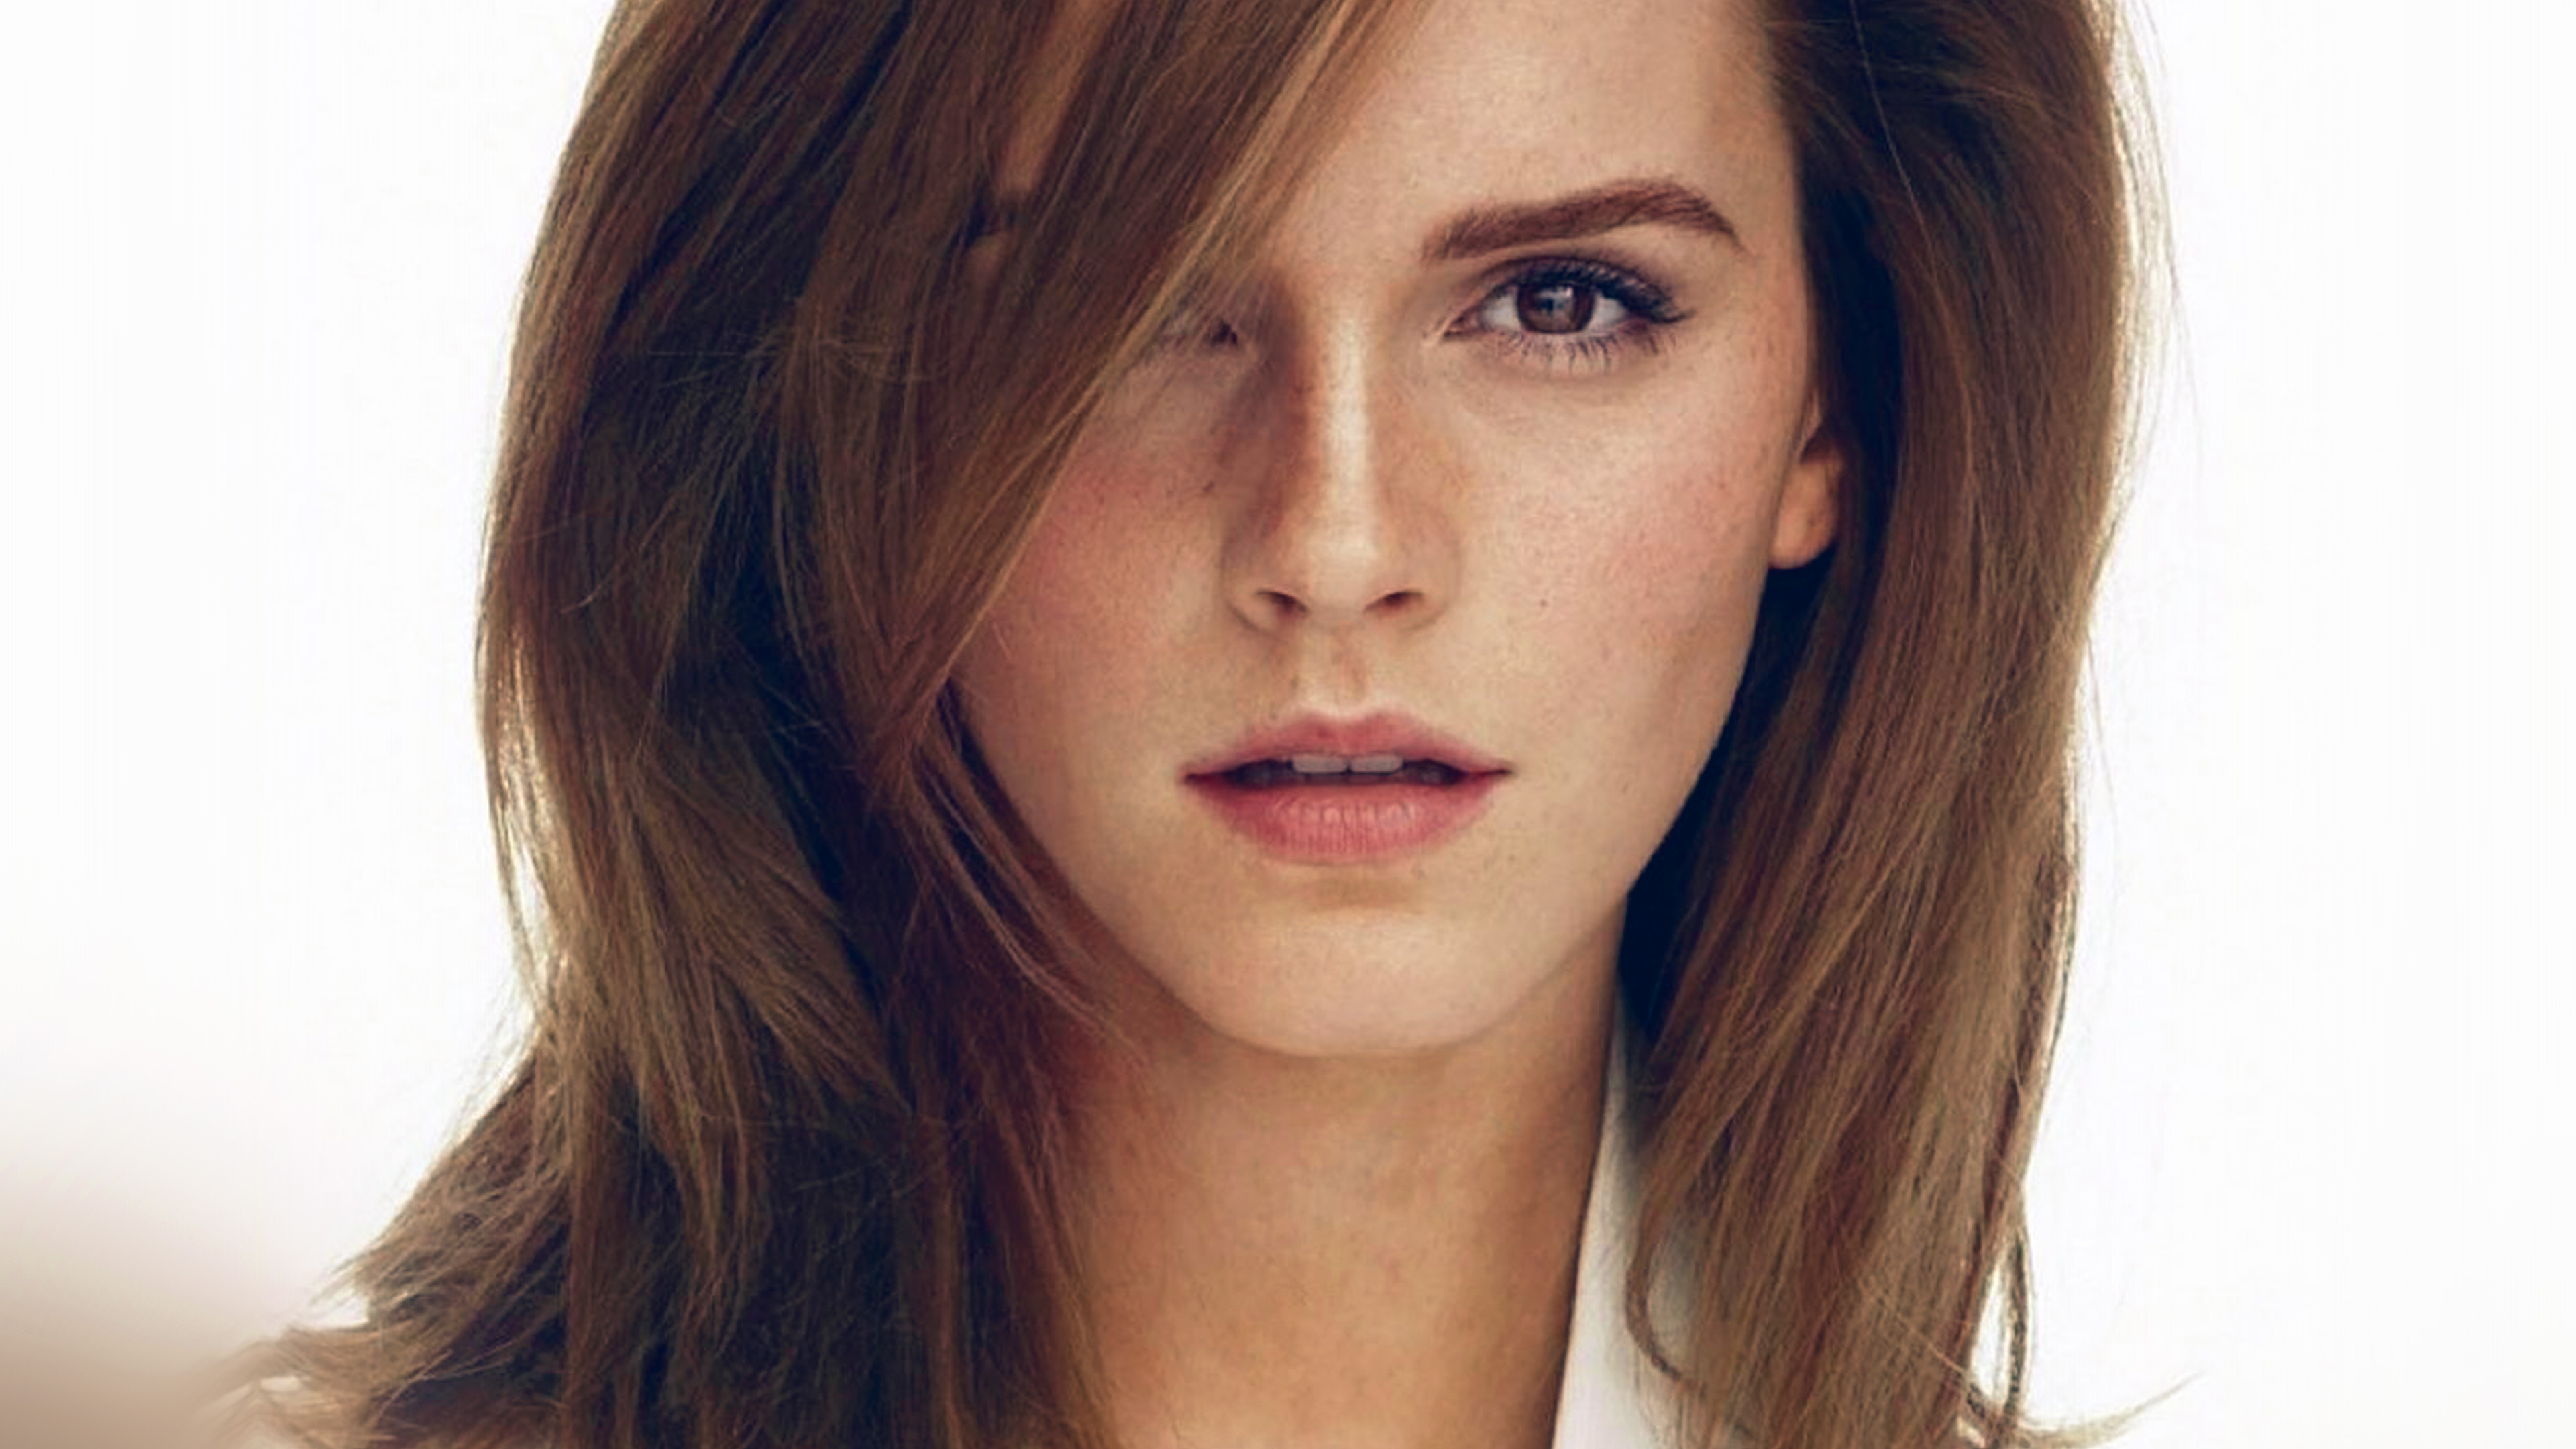 Fall Desktop Wallpaper Mac Hp25 Girl Emma Watson Face Actress Film Wallpaper